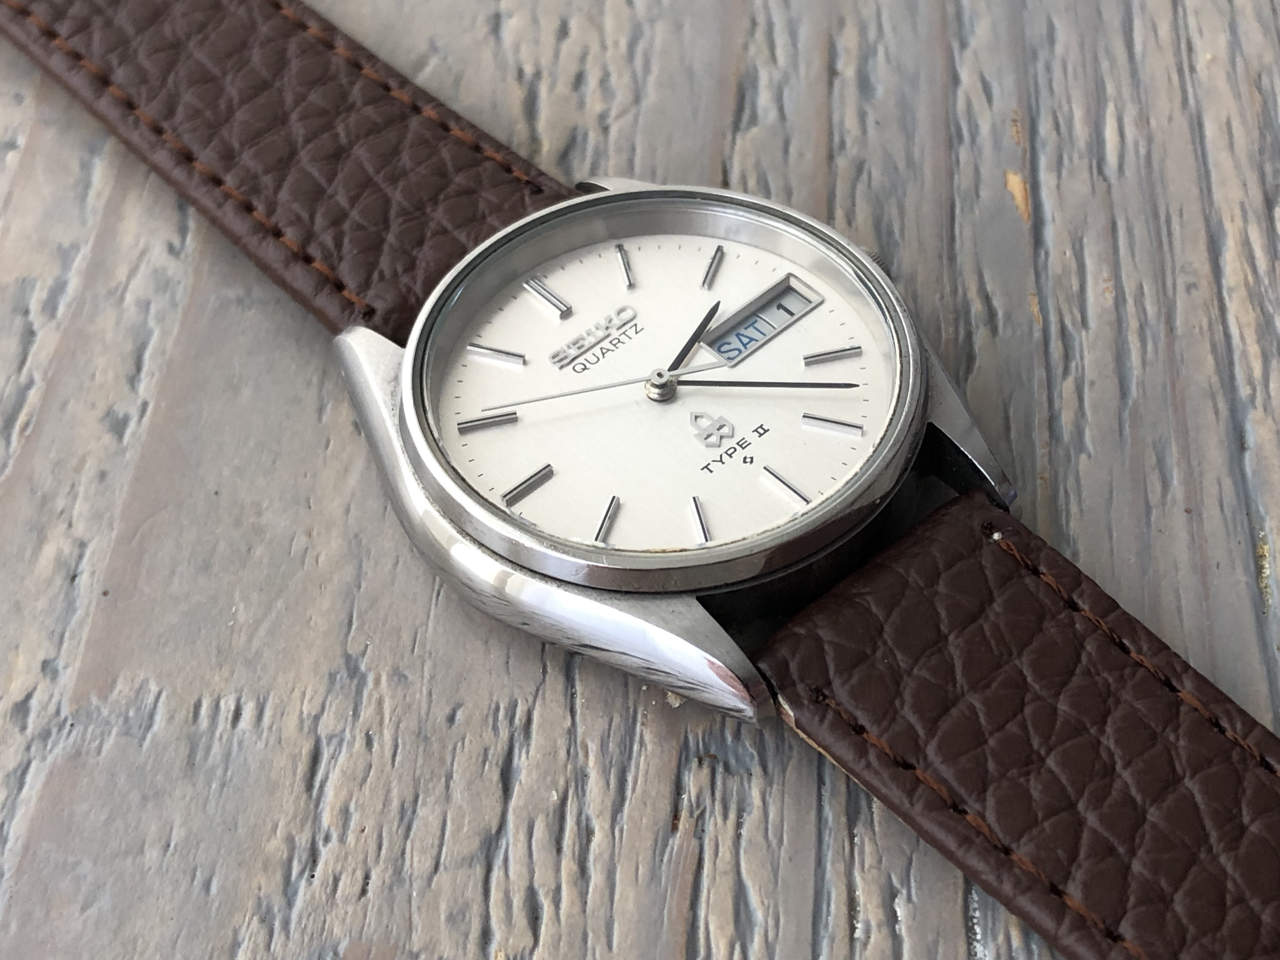 Seiko Quartz Type II 8223-6030 (For sale)